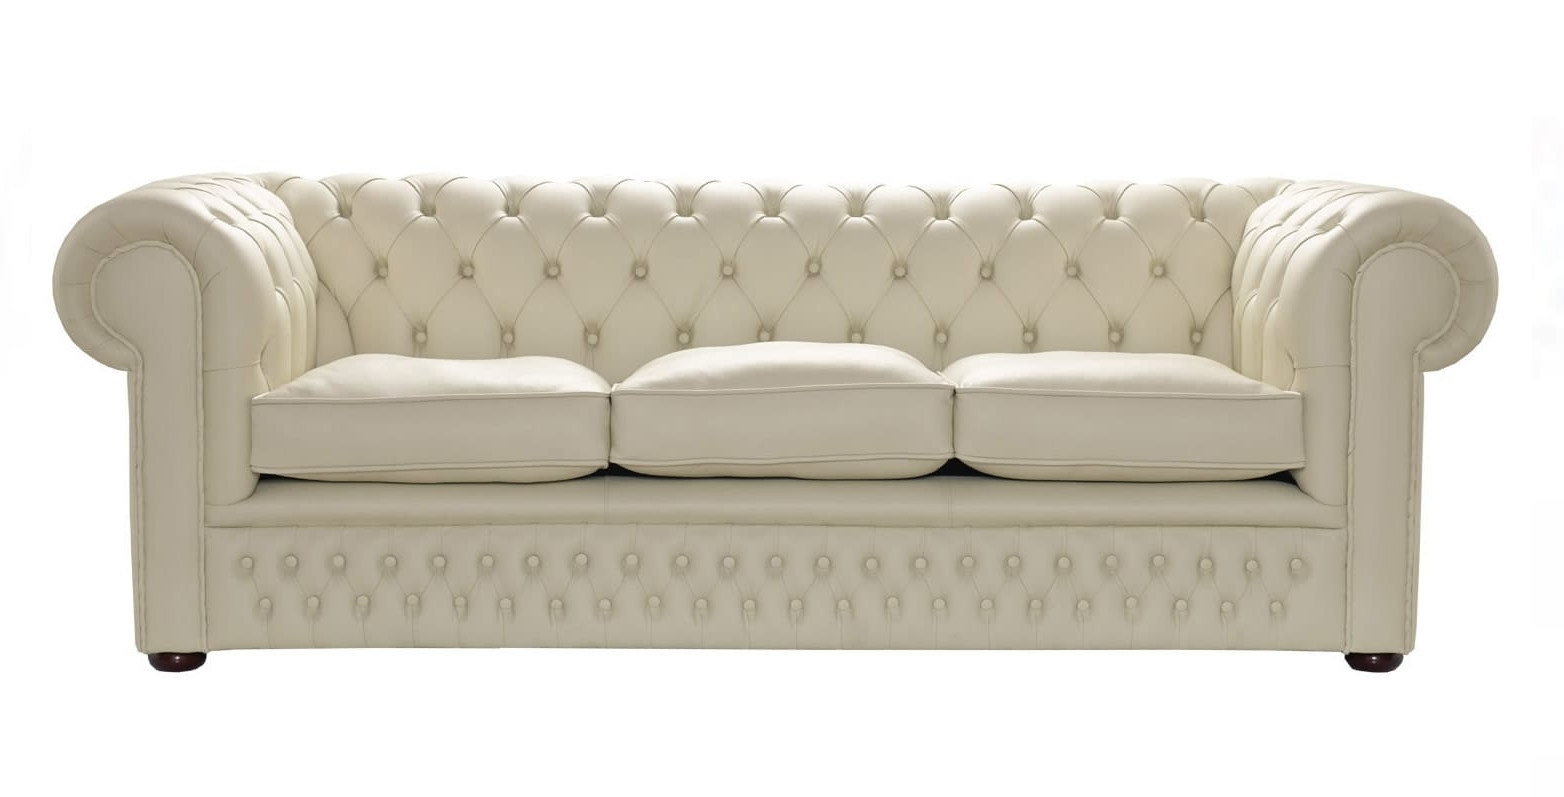 Leather Chesterfield Sofas Regarding Well Liked Cream Leather Chesterfield Sofa, Handcrafted In The Uk (View 12 of 20)